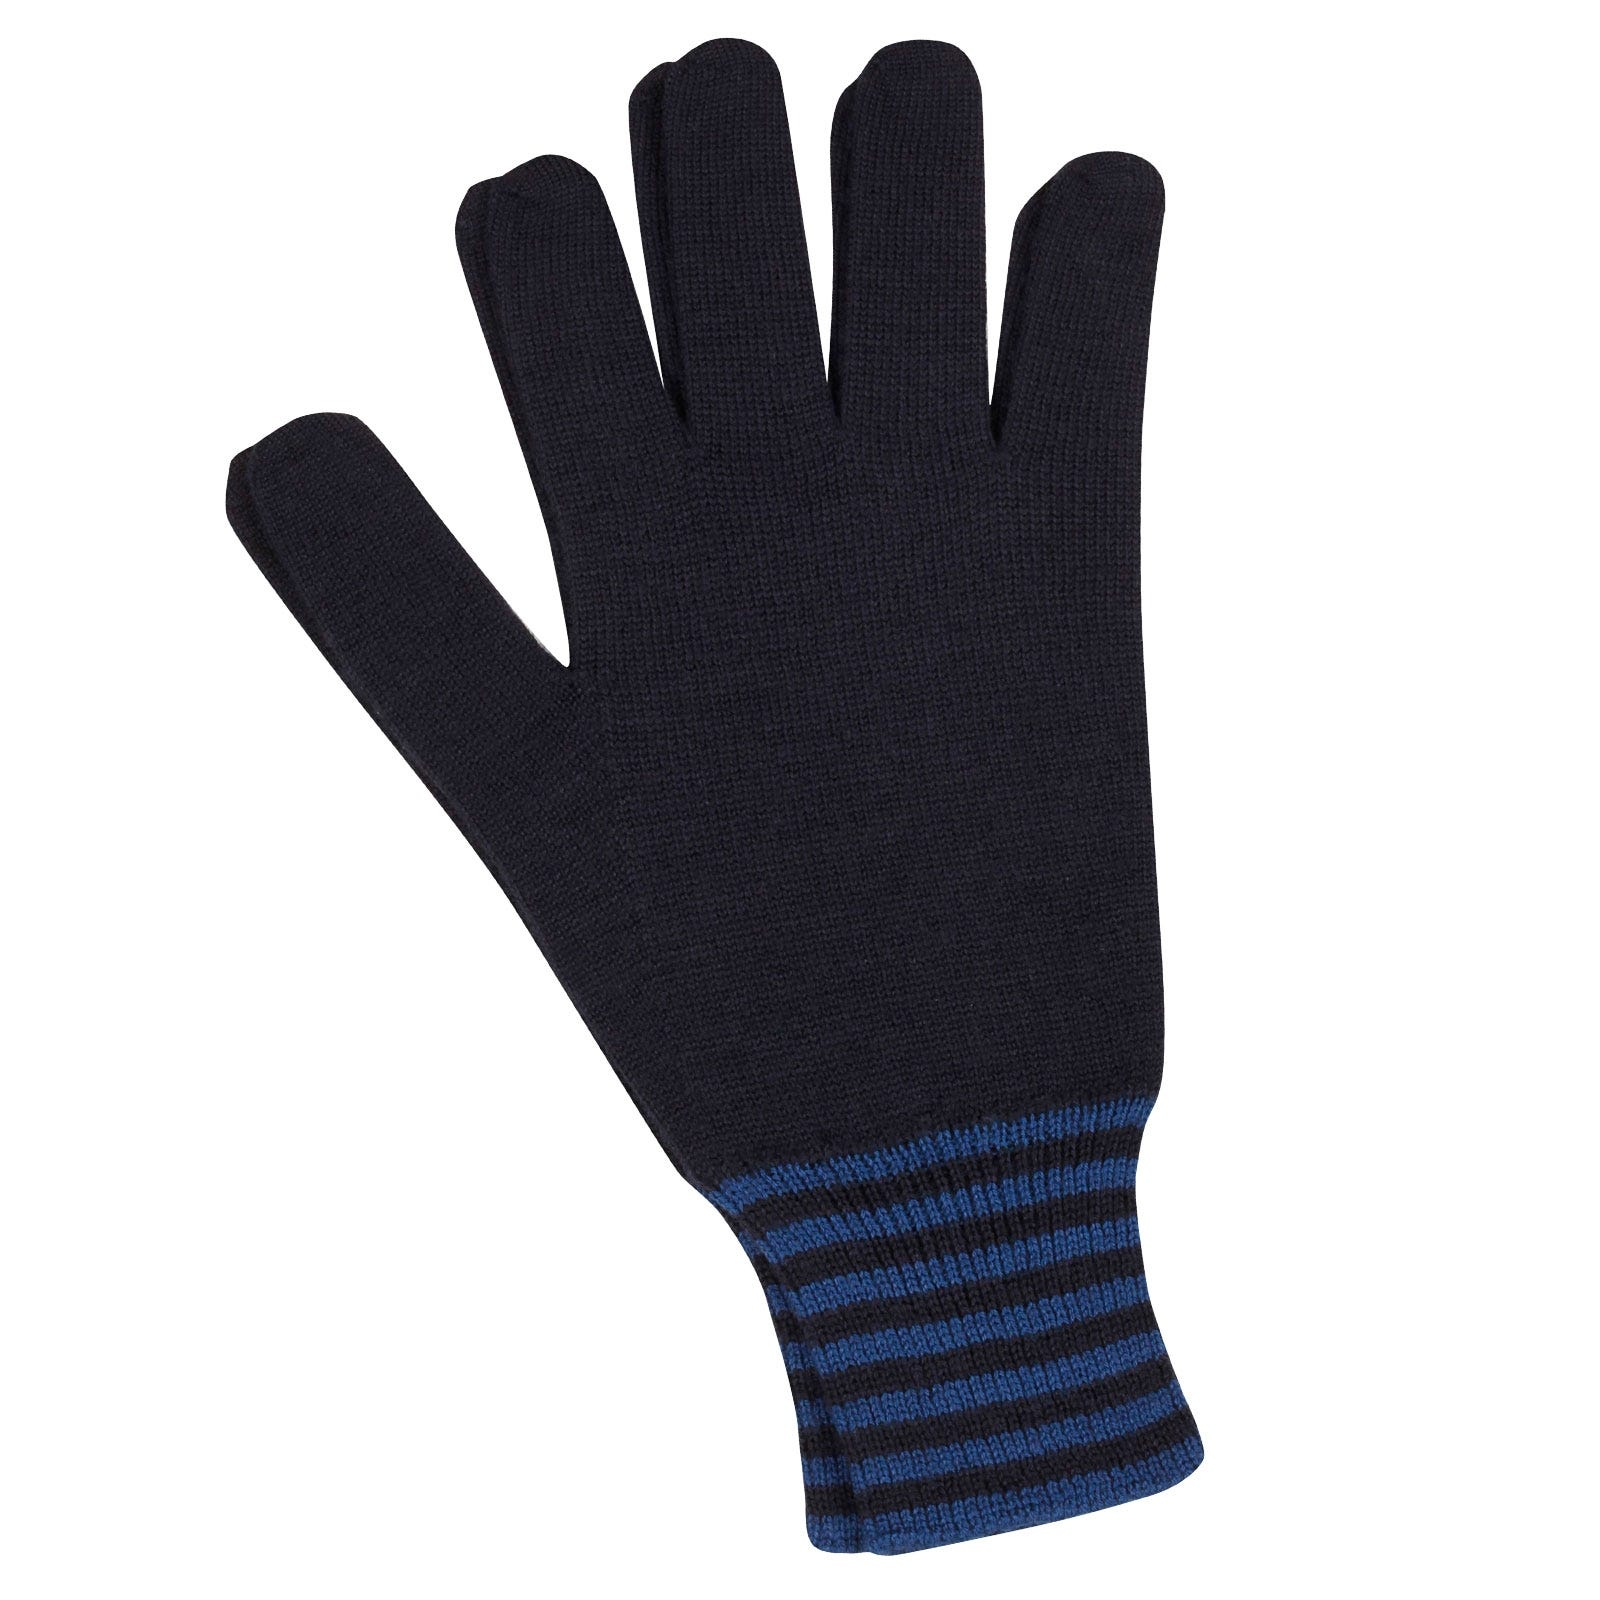 John Smedley Cooley Merino Wool Gloves in Midnight-s/m